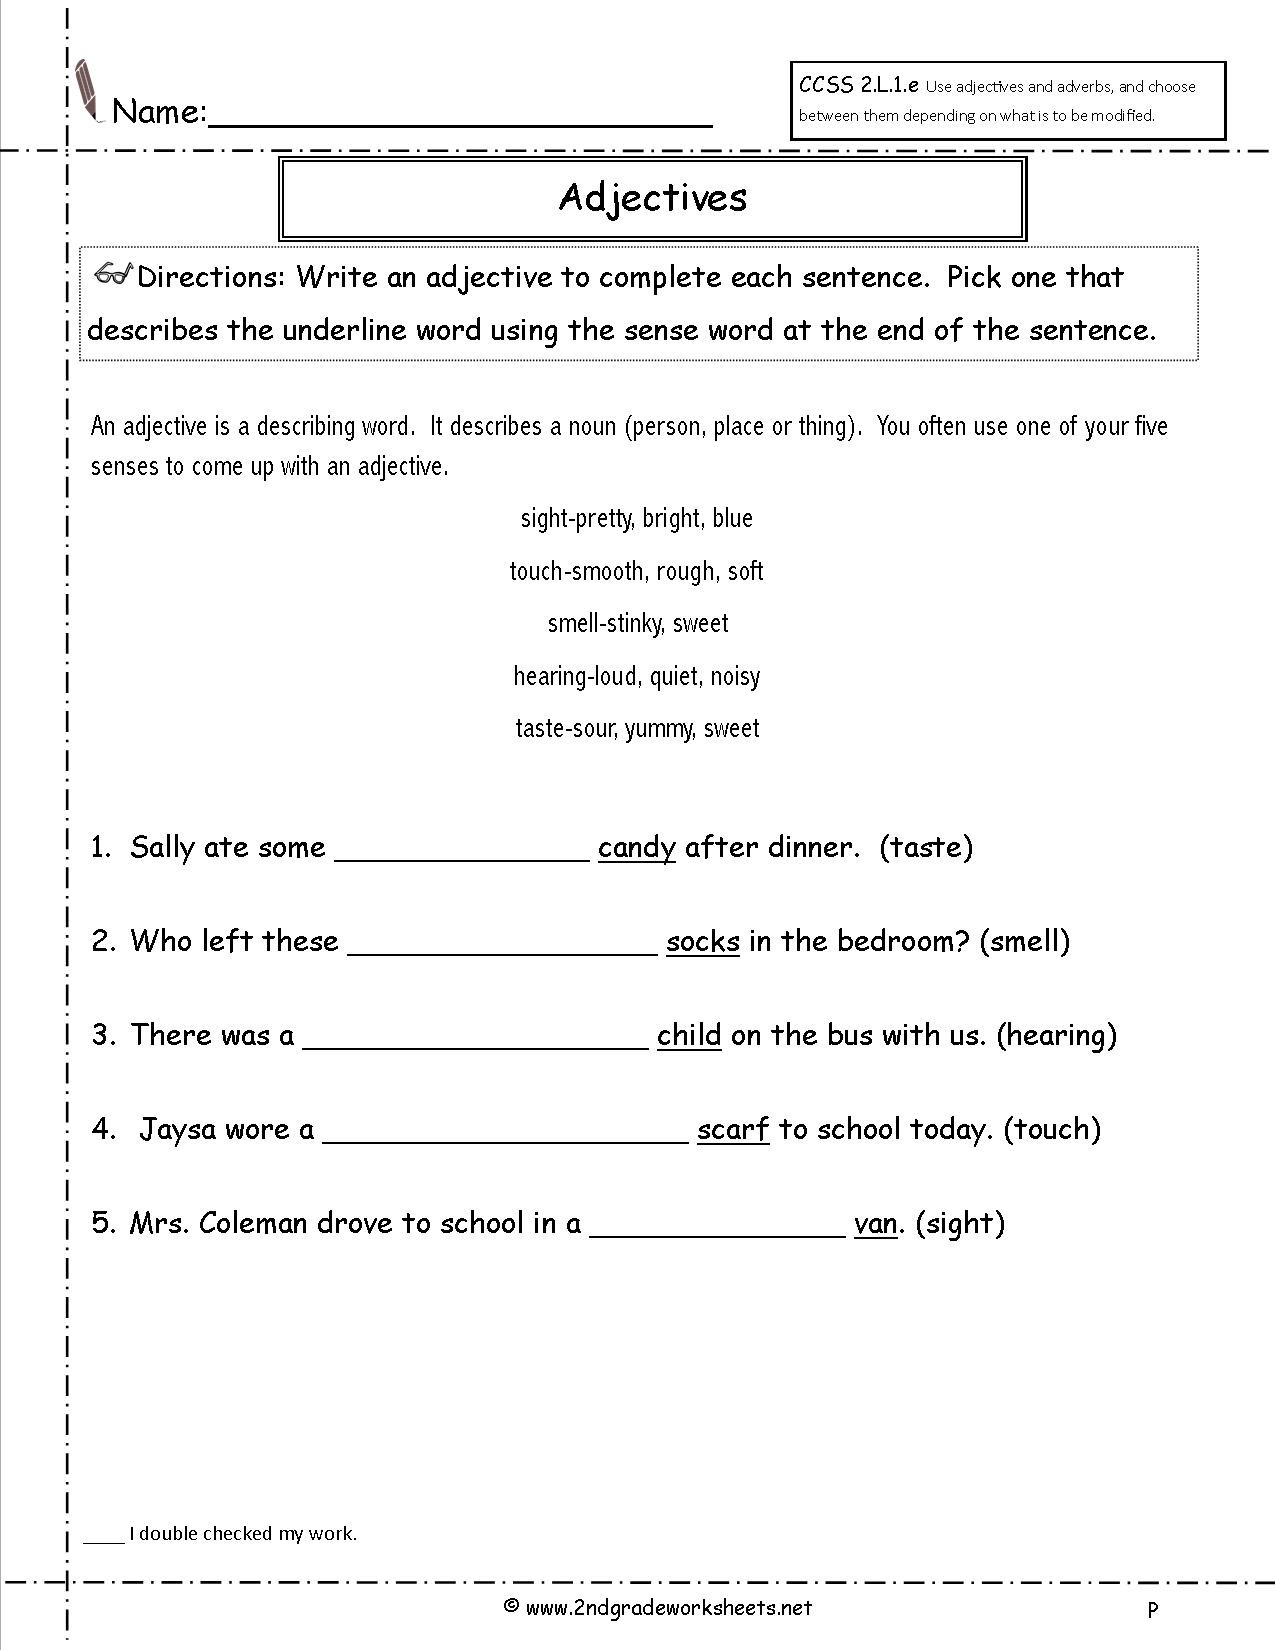 Adjectives Worksheets for Grade 2 Binary Math Worksheet Pronoun Worksheets for Grade 2 Free